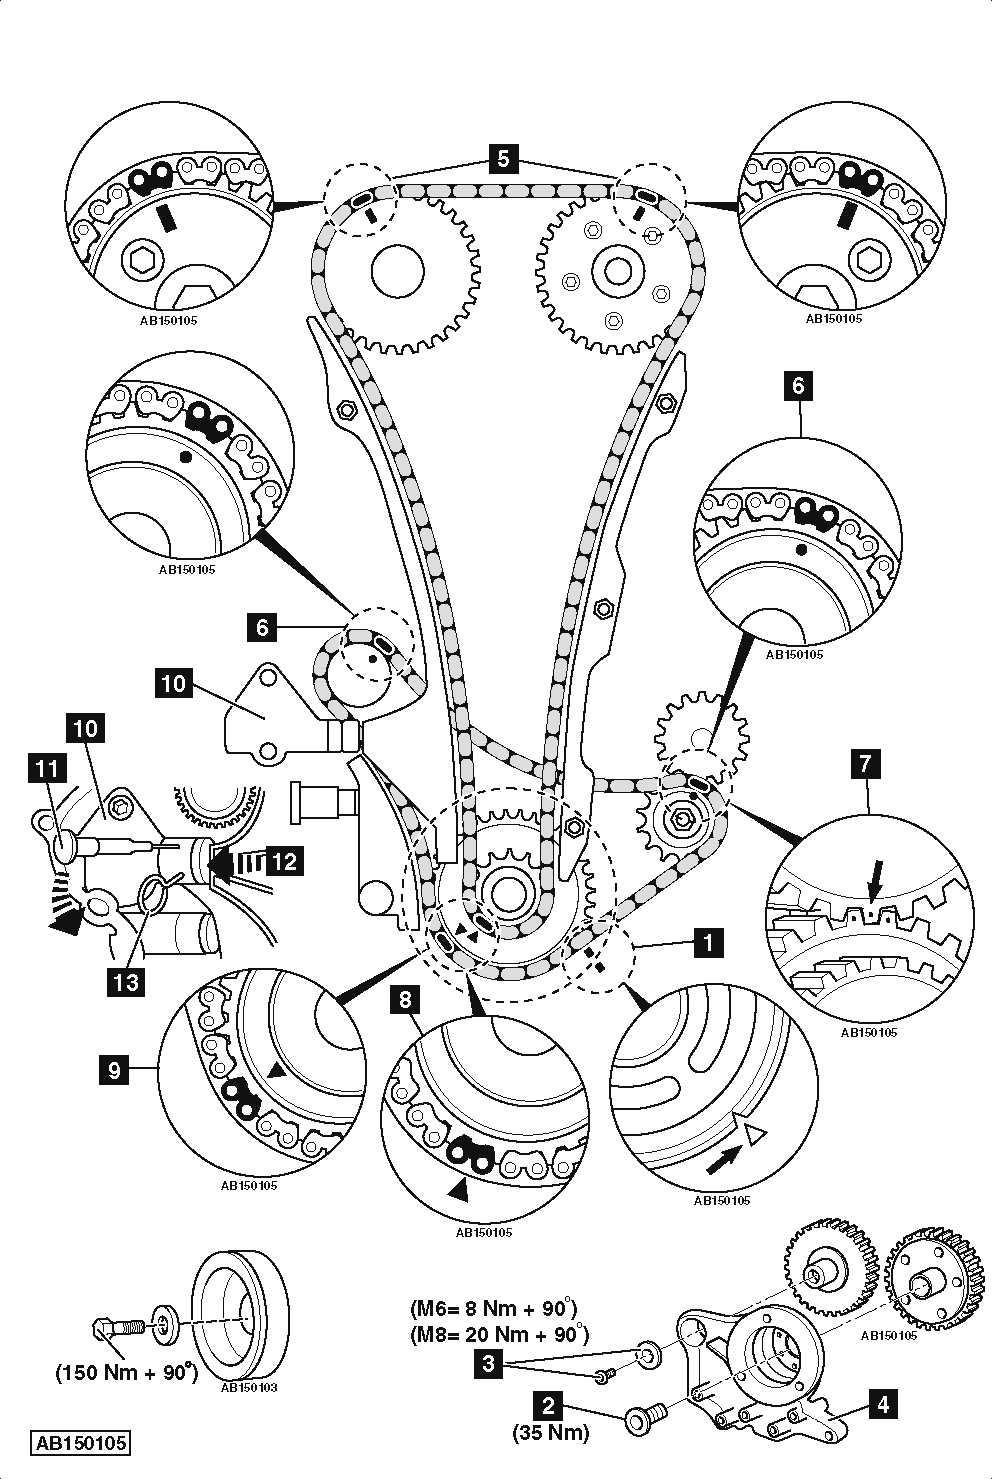 Audi q5 wiring diagram audi wiring diagrams instructions vw 2 0t fsi engine diagram audi q5 wiring diagram at freeeeautoresponder publicscrutiny Images